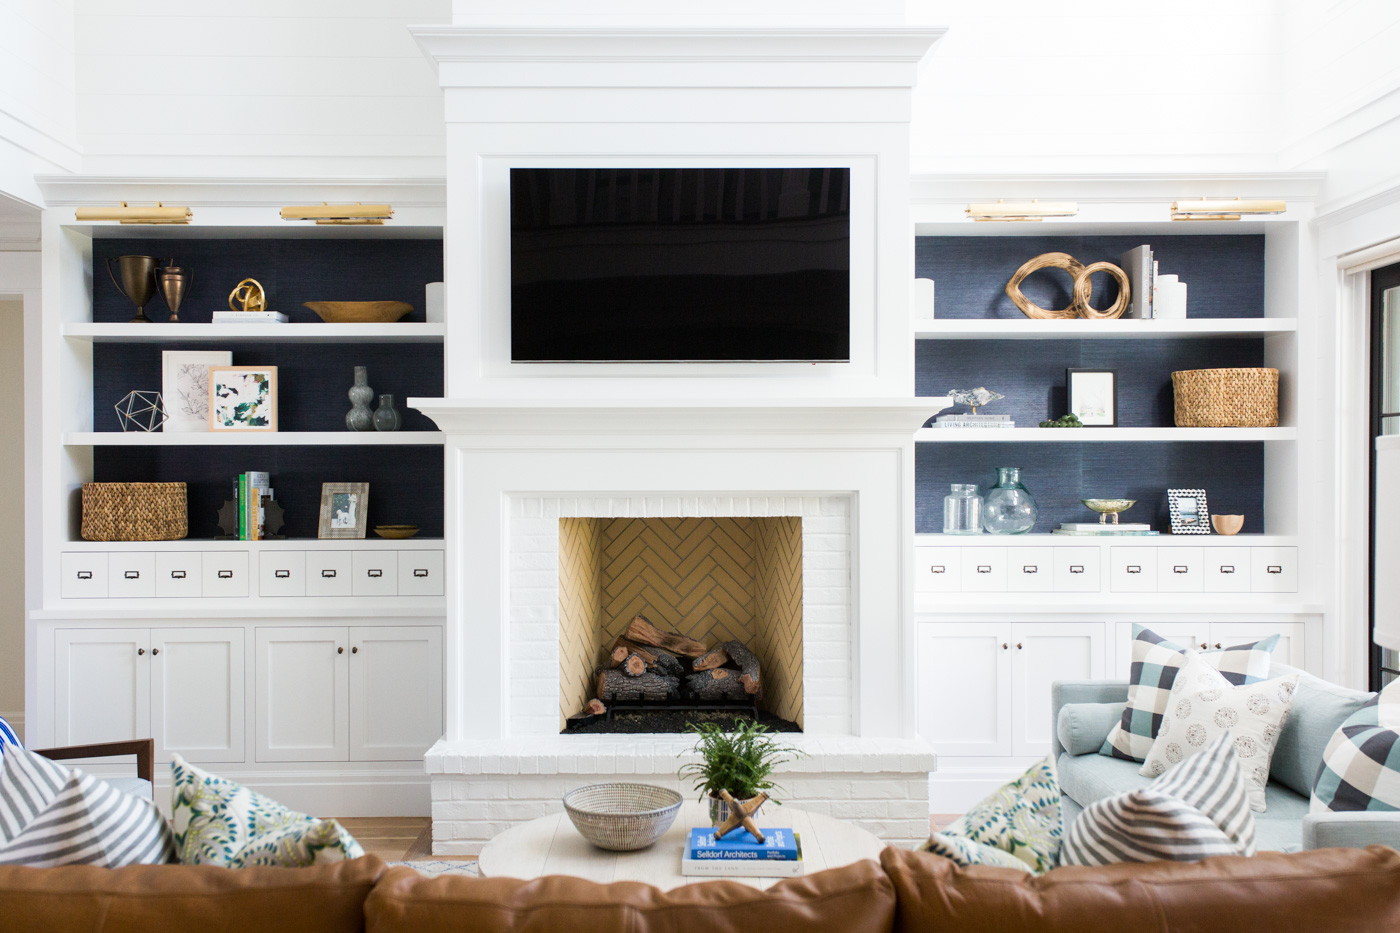 Fireplace flanked by two built in cabinets